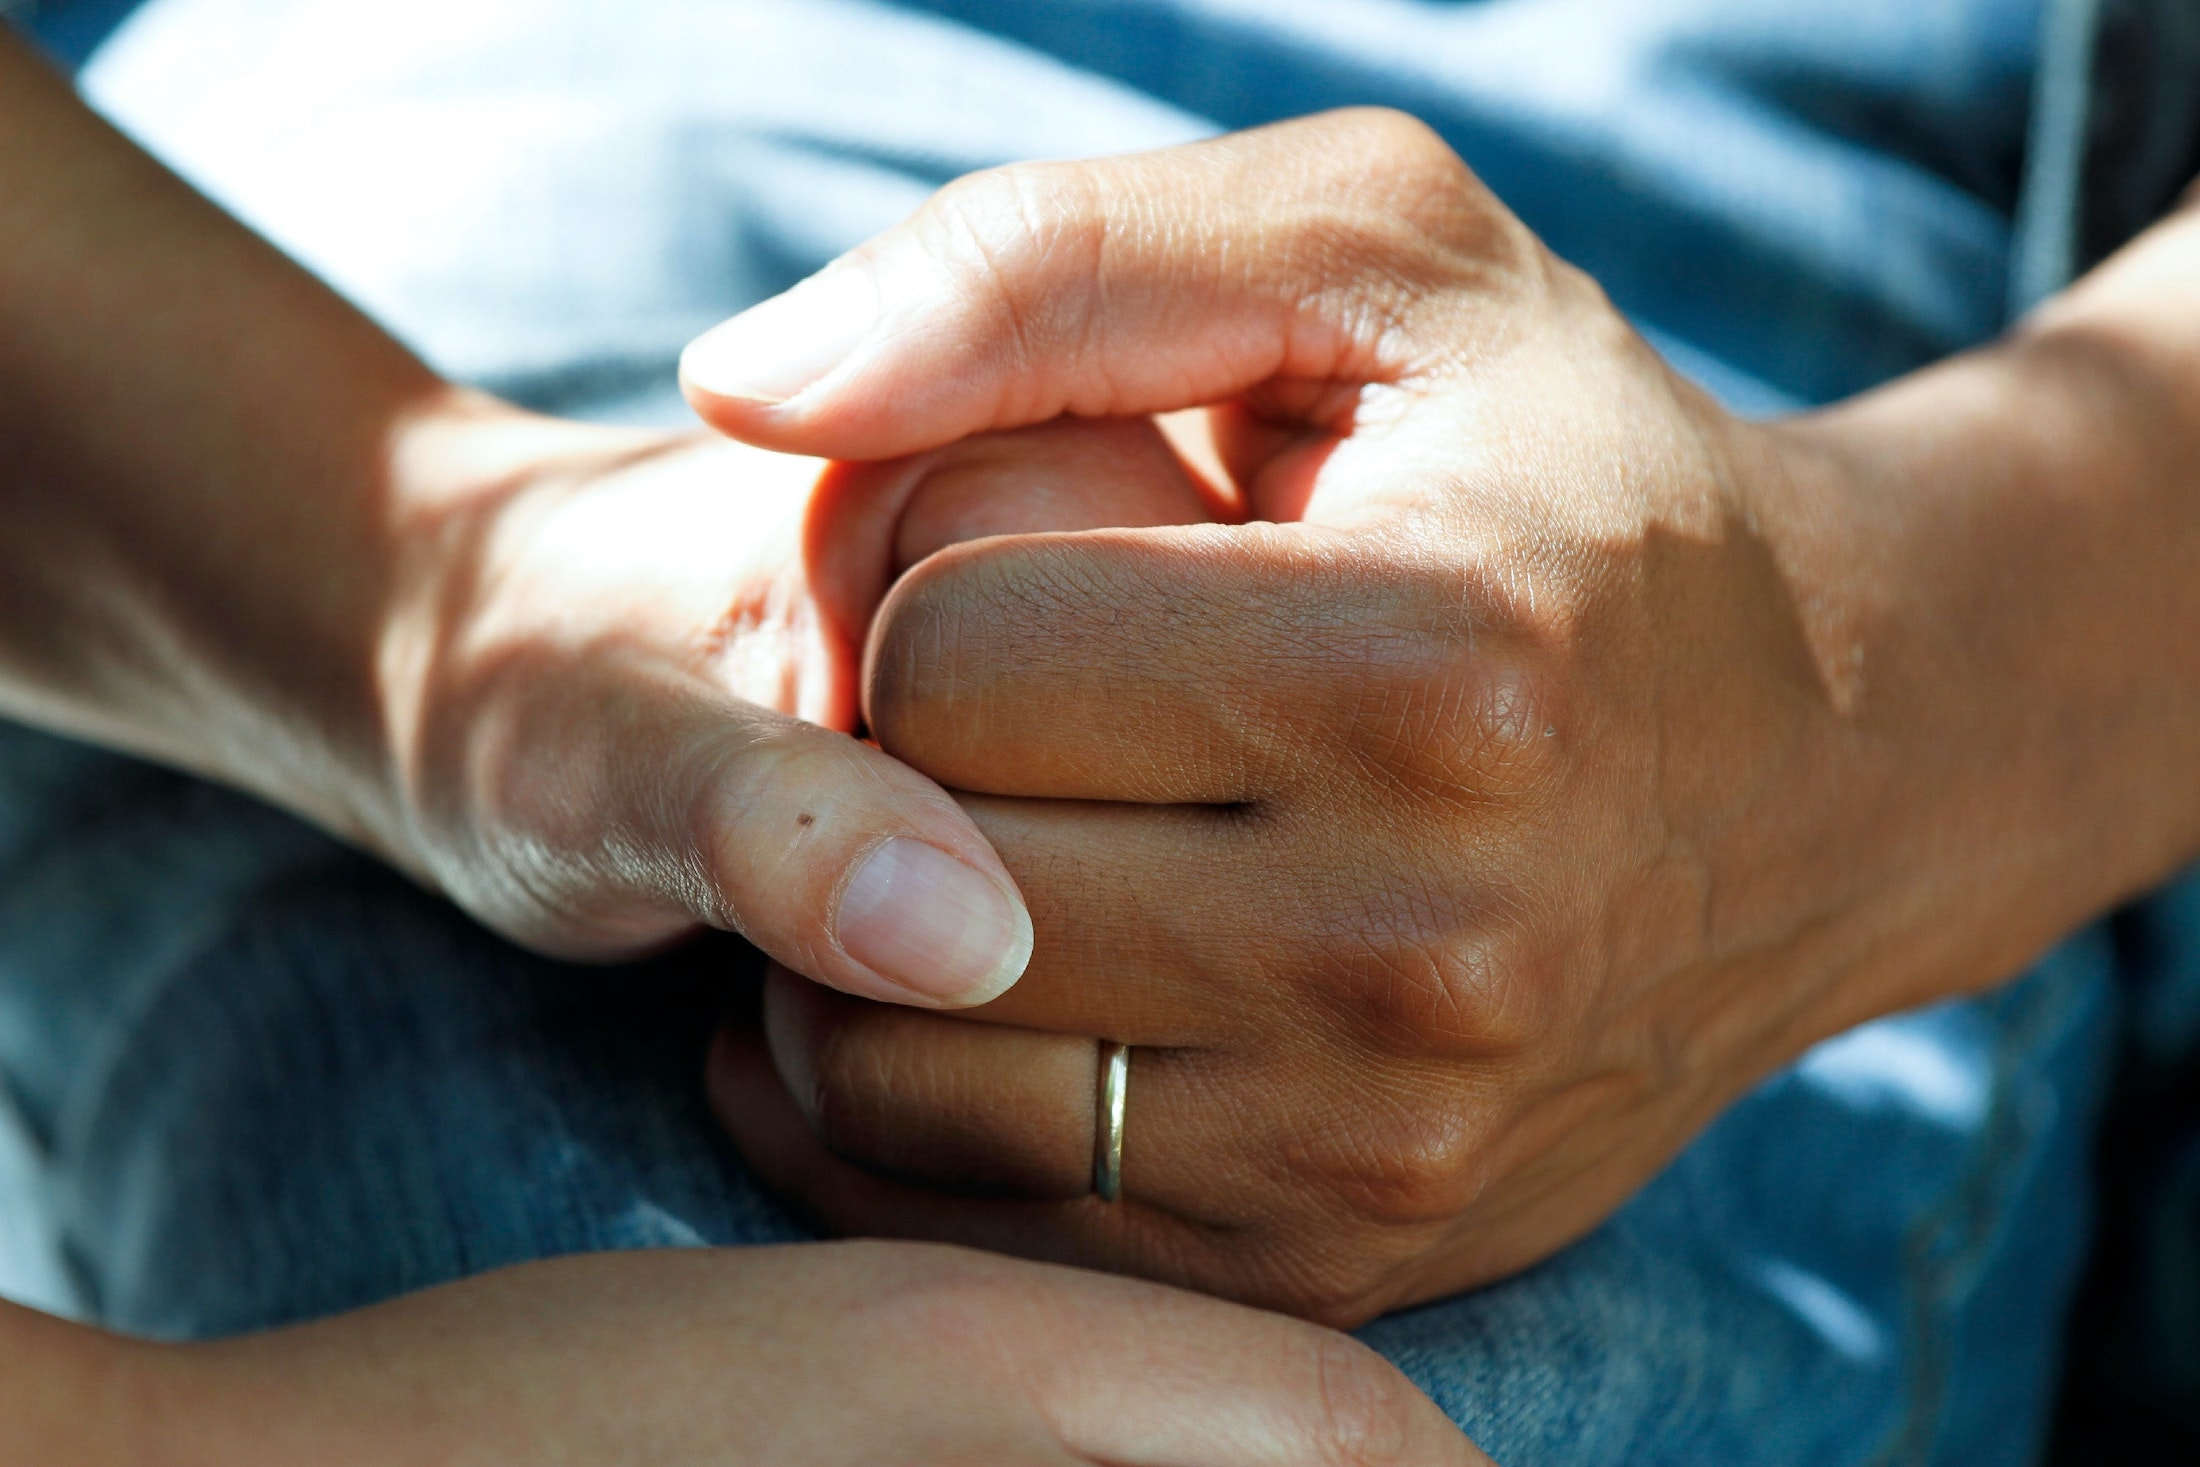 Two people's hands clasping.